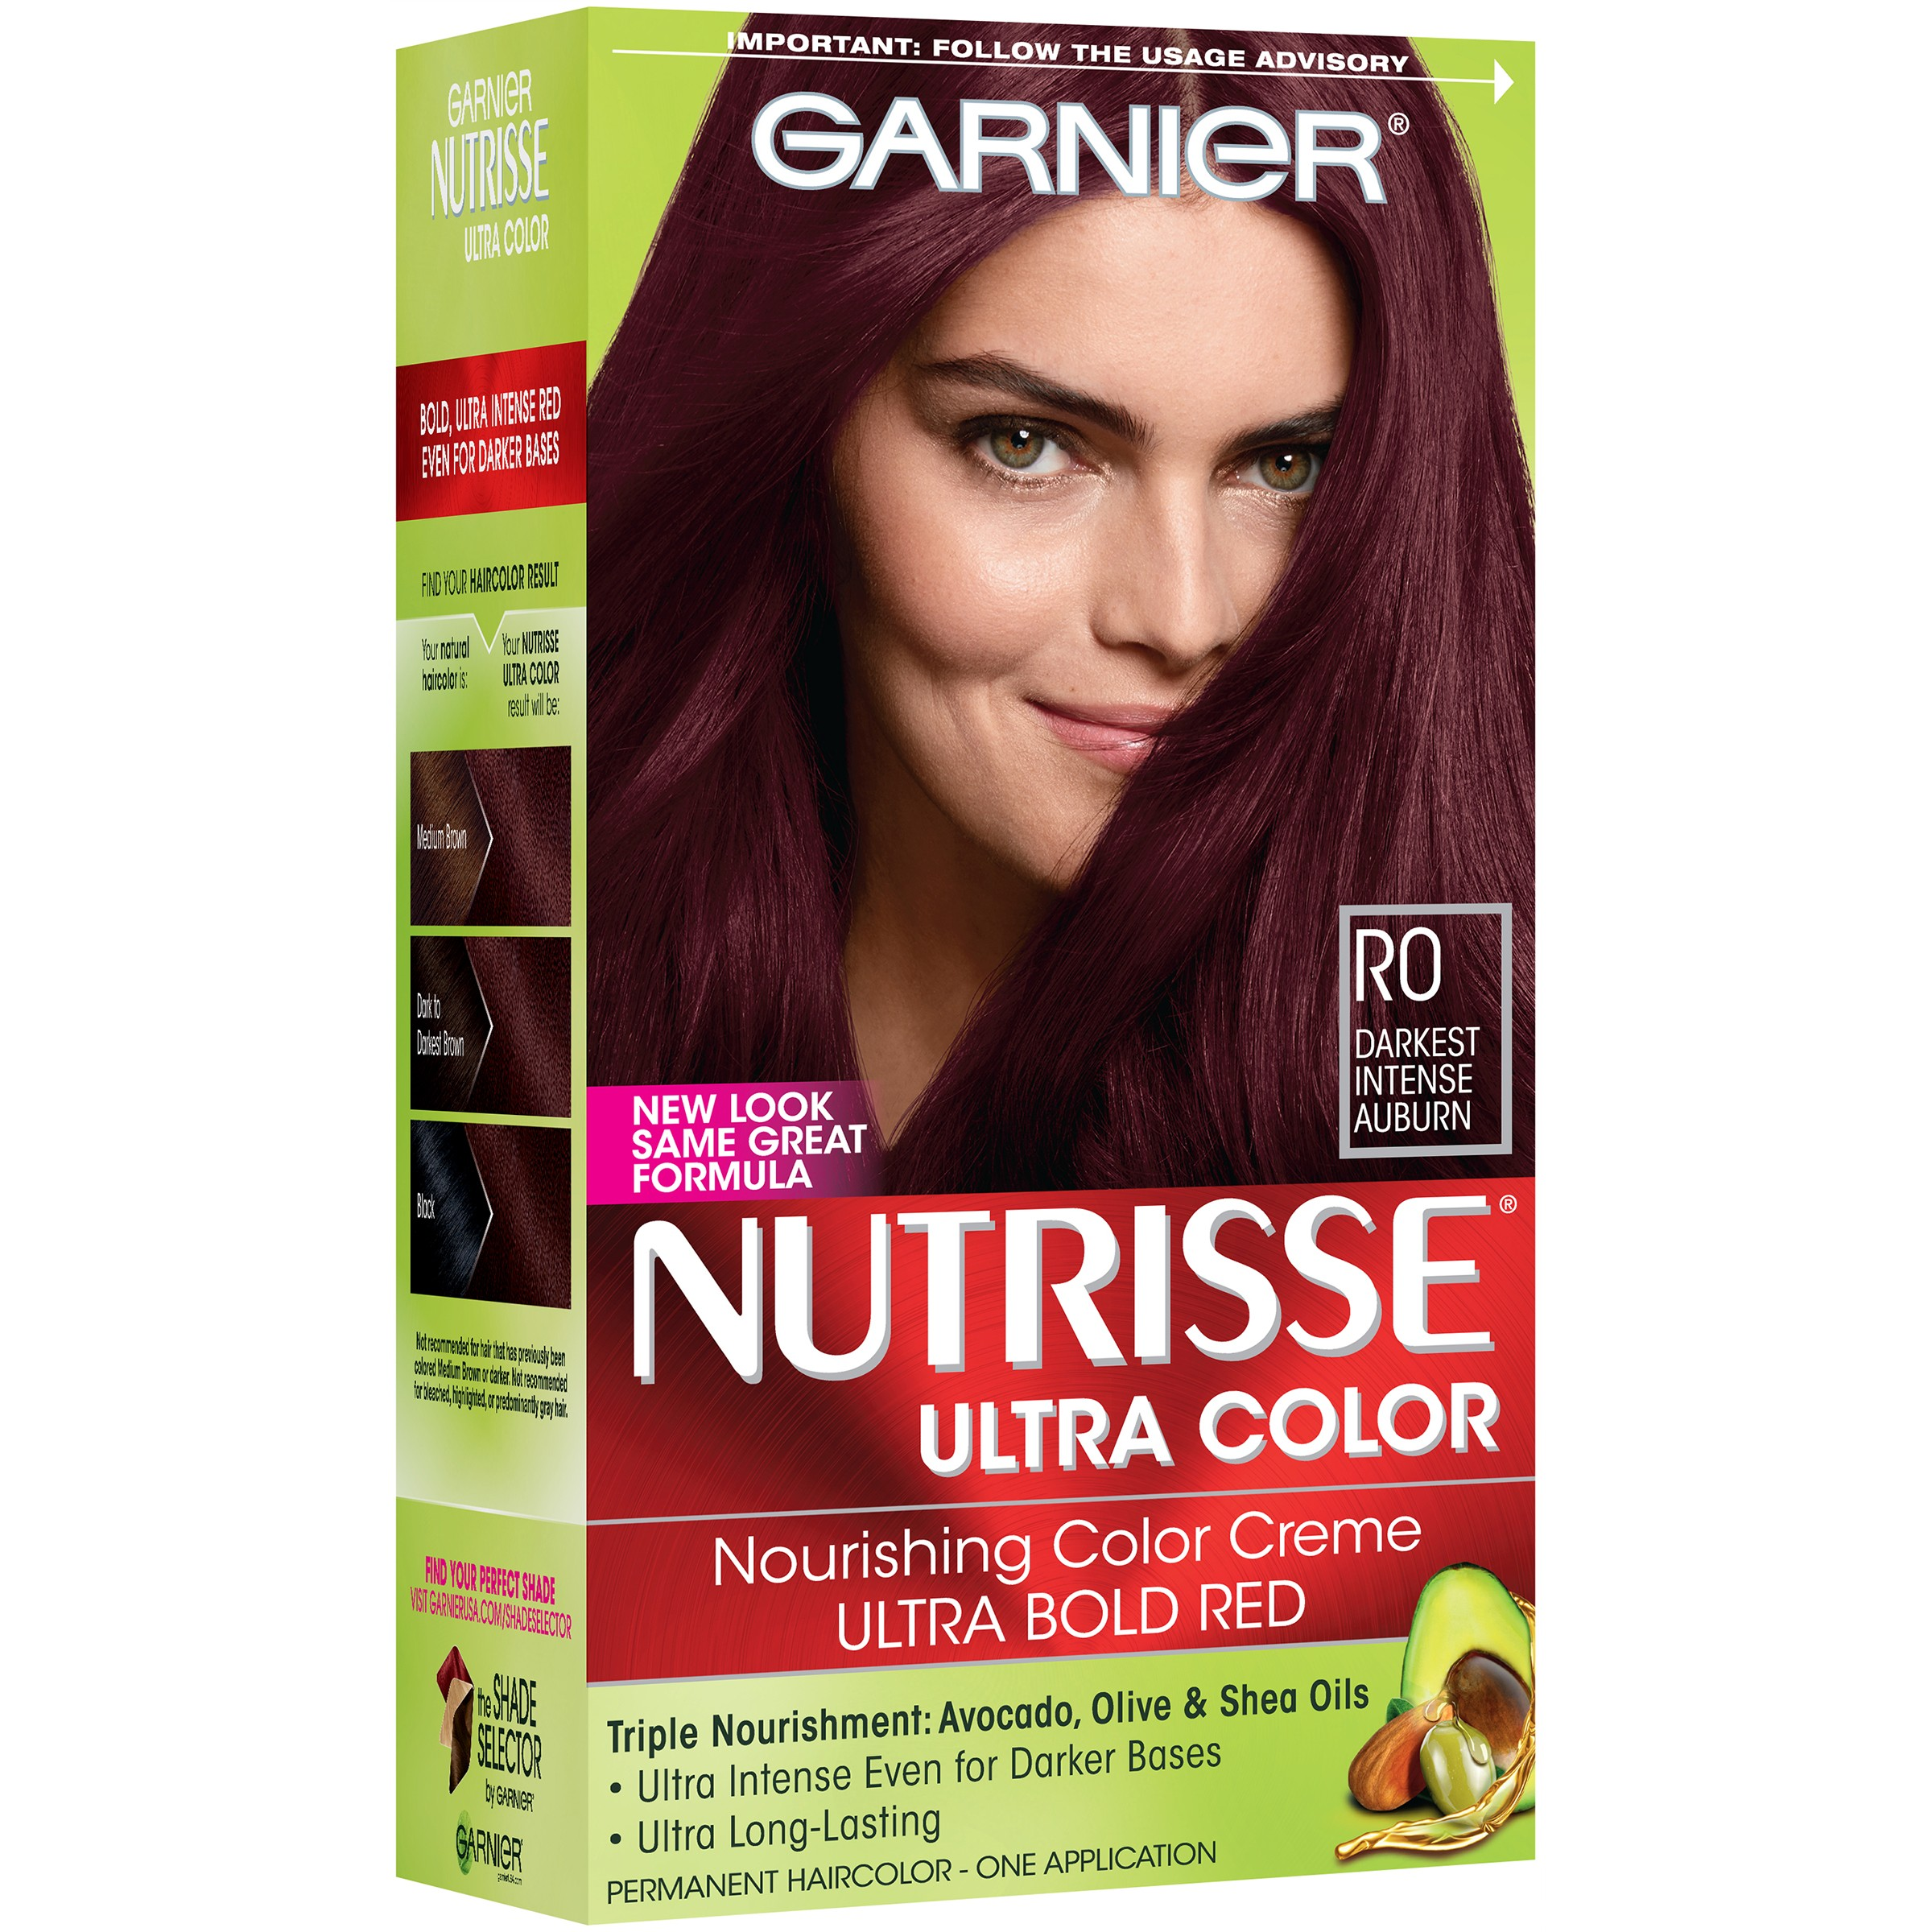 Garnier Nutrisse Ultra Color Nourishing Color Creme, R0 Darkest Intense Auburn